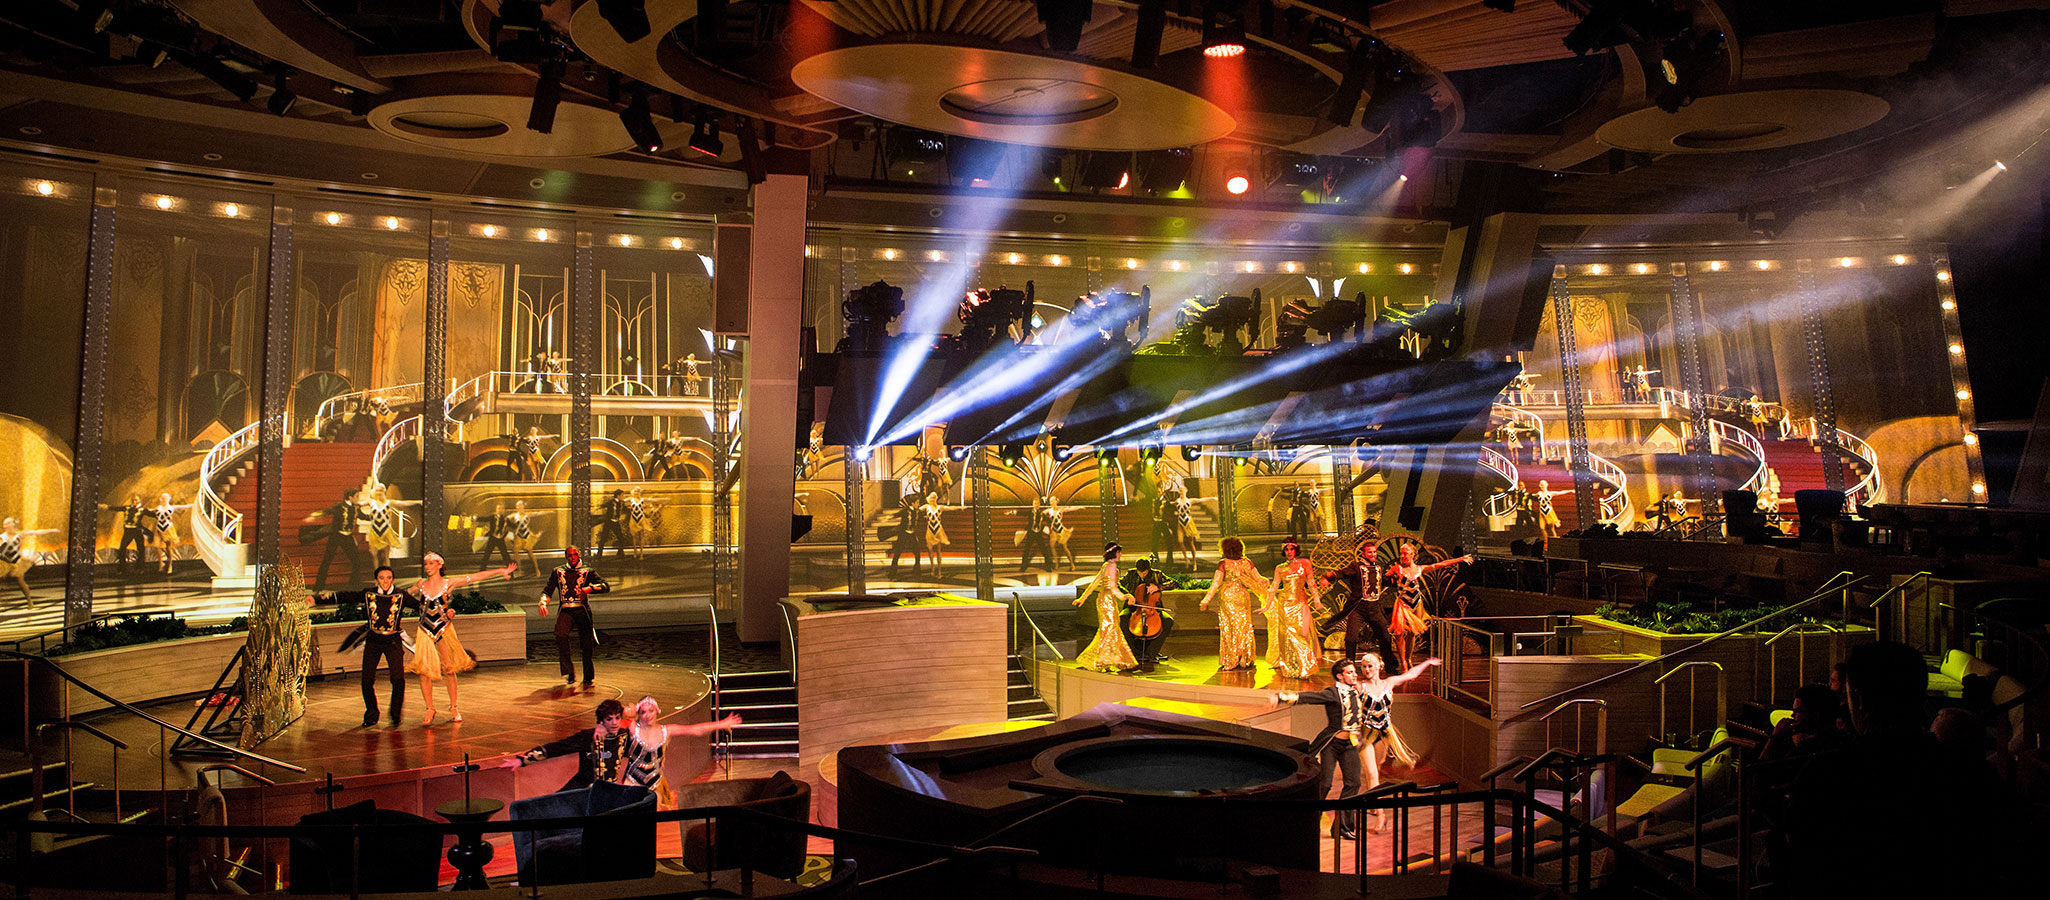 OceanEvent fine-tunes the shows of the professional musical artists on board to the tastes of our charter clients – so that you will get your very own musical on your exclusively chartered cruise ship.